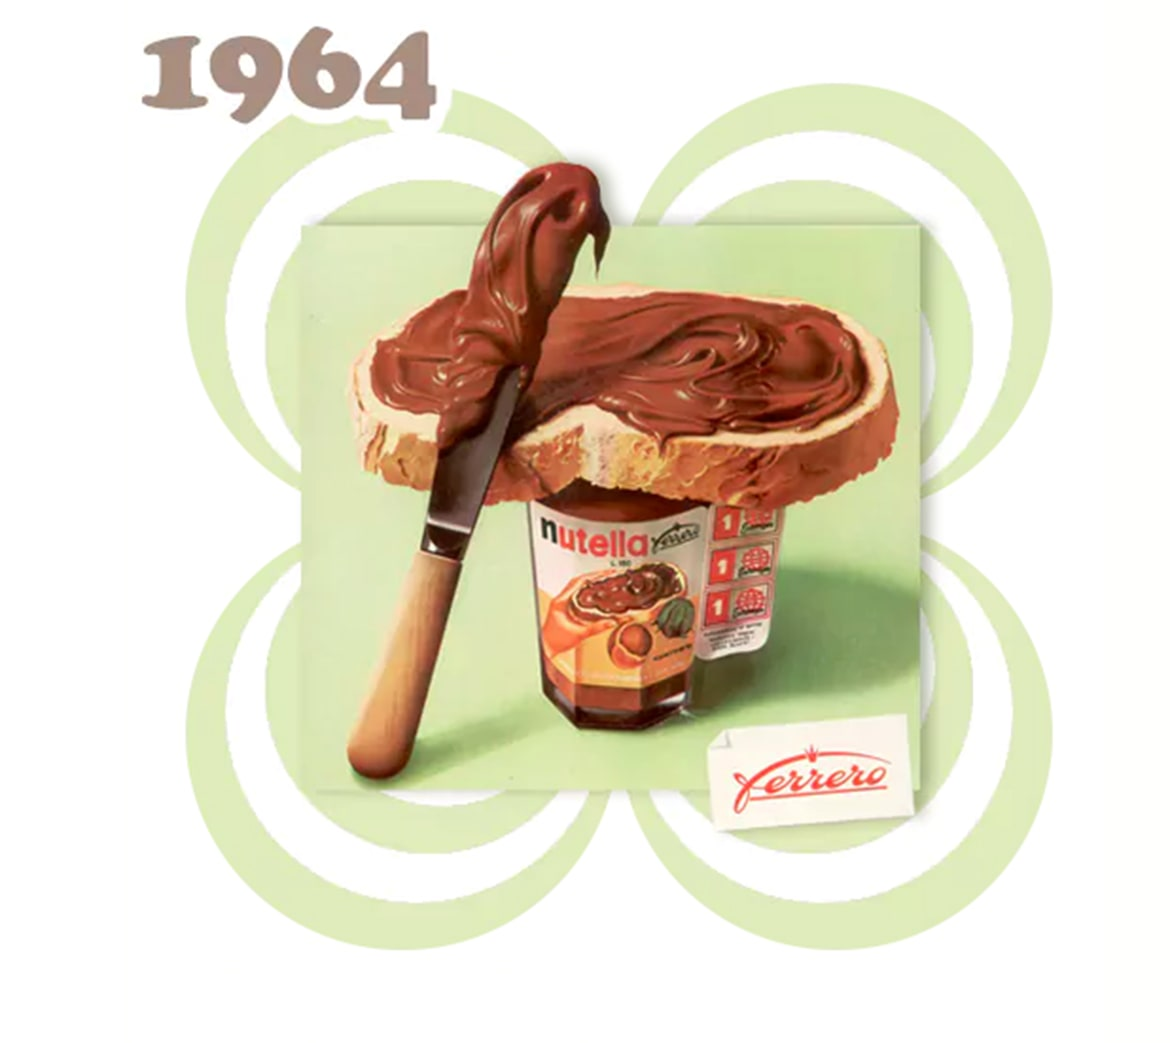 PRIMER TARRO DE NUTELLA, créditos al sitio web de Nutella: https://www.nutella.com/it/it/la-storia-di-nutella#1964